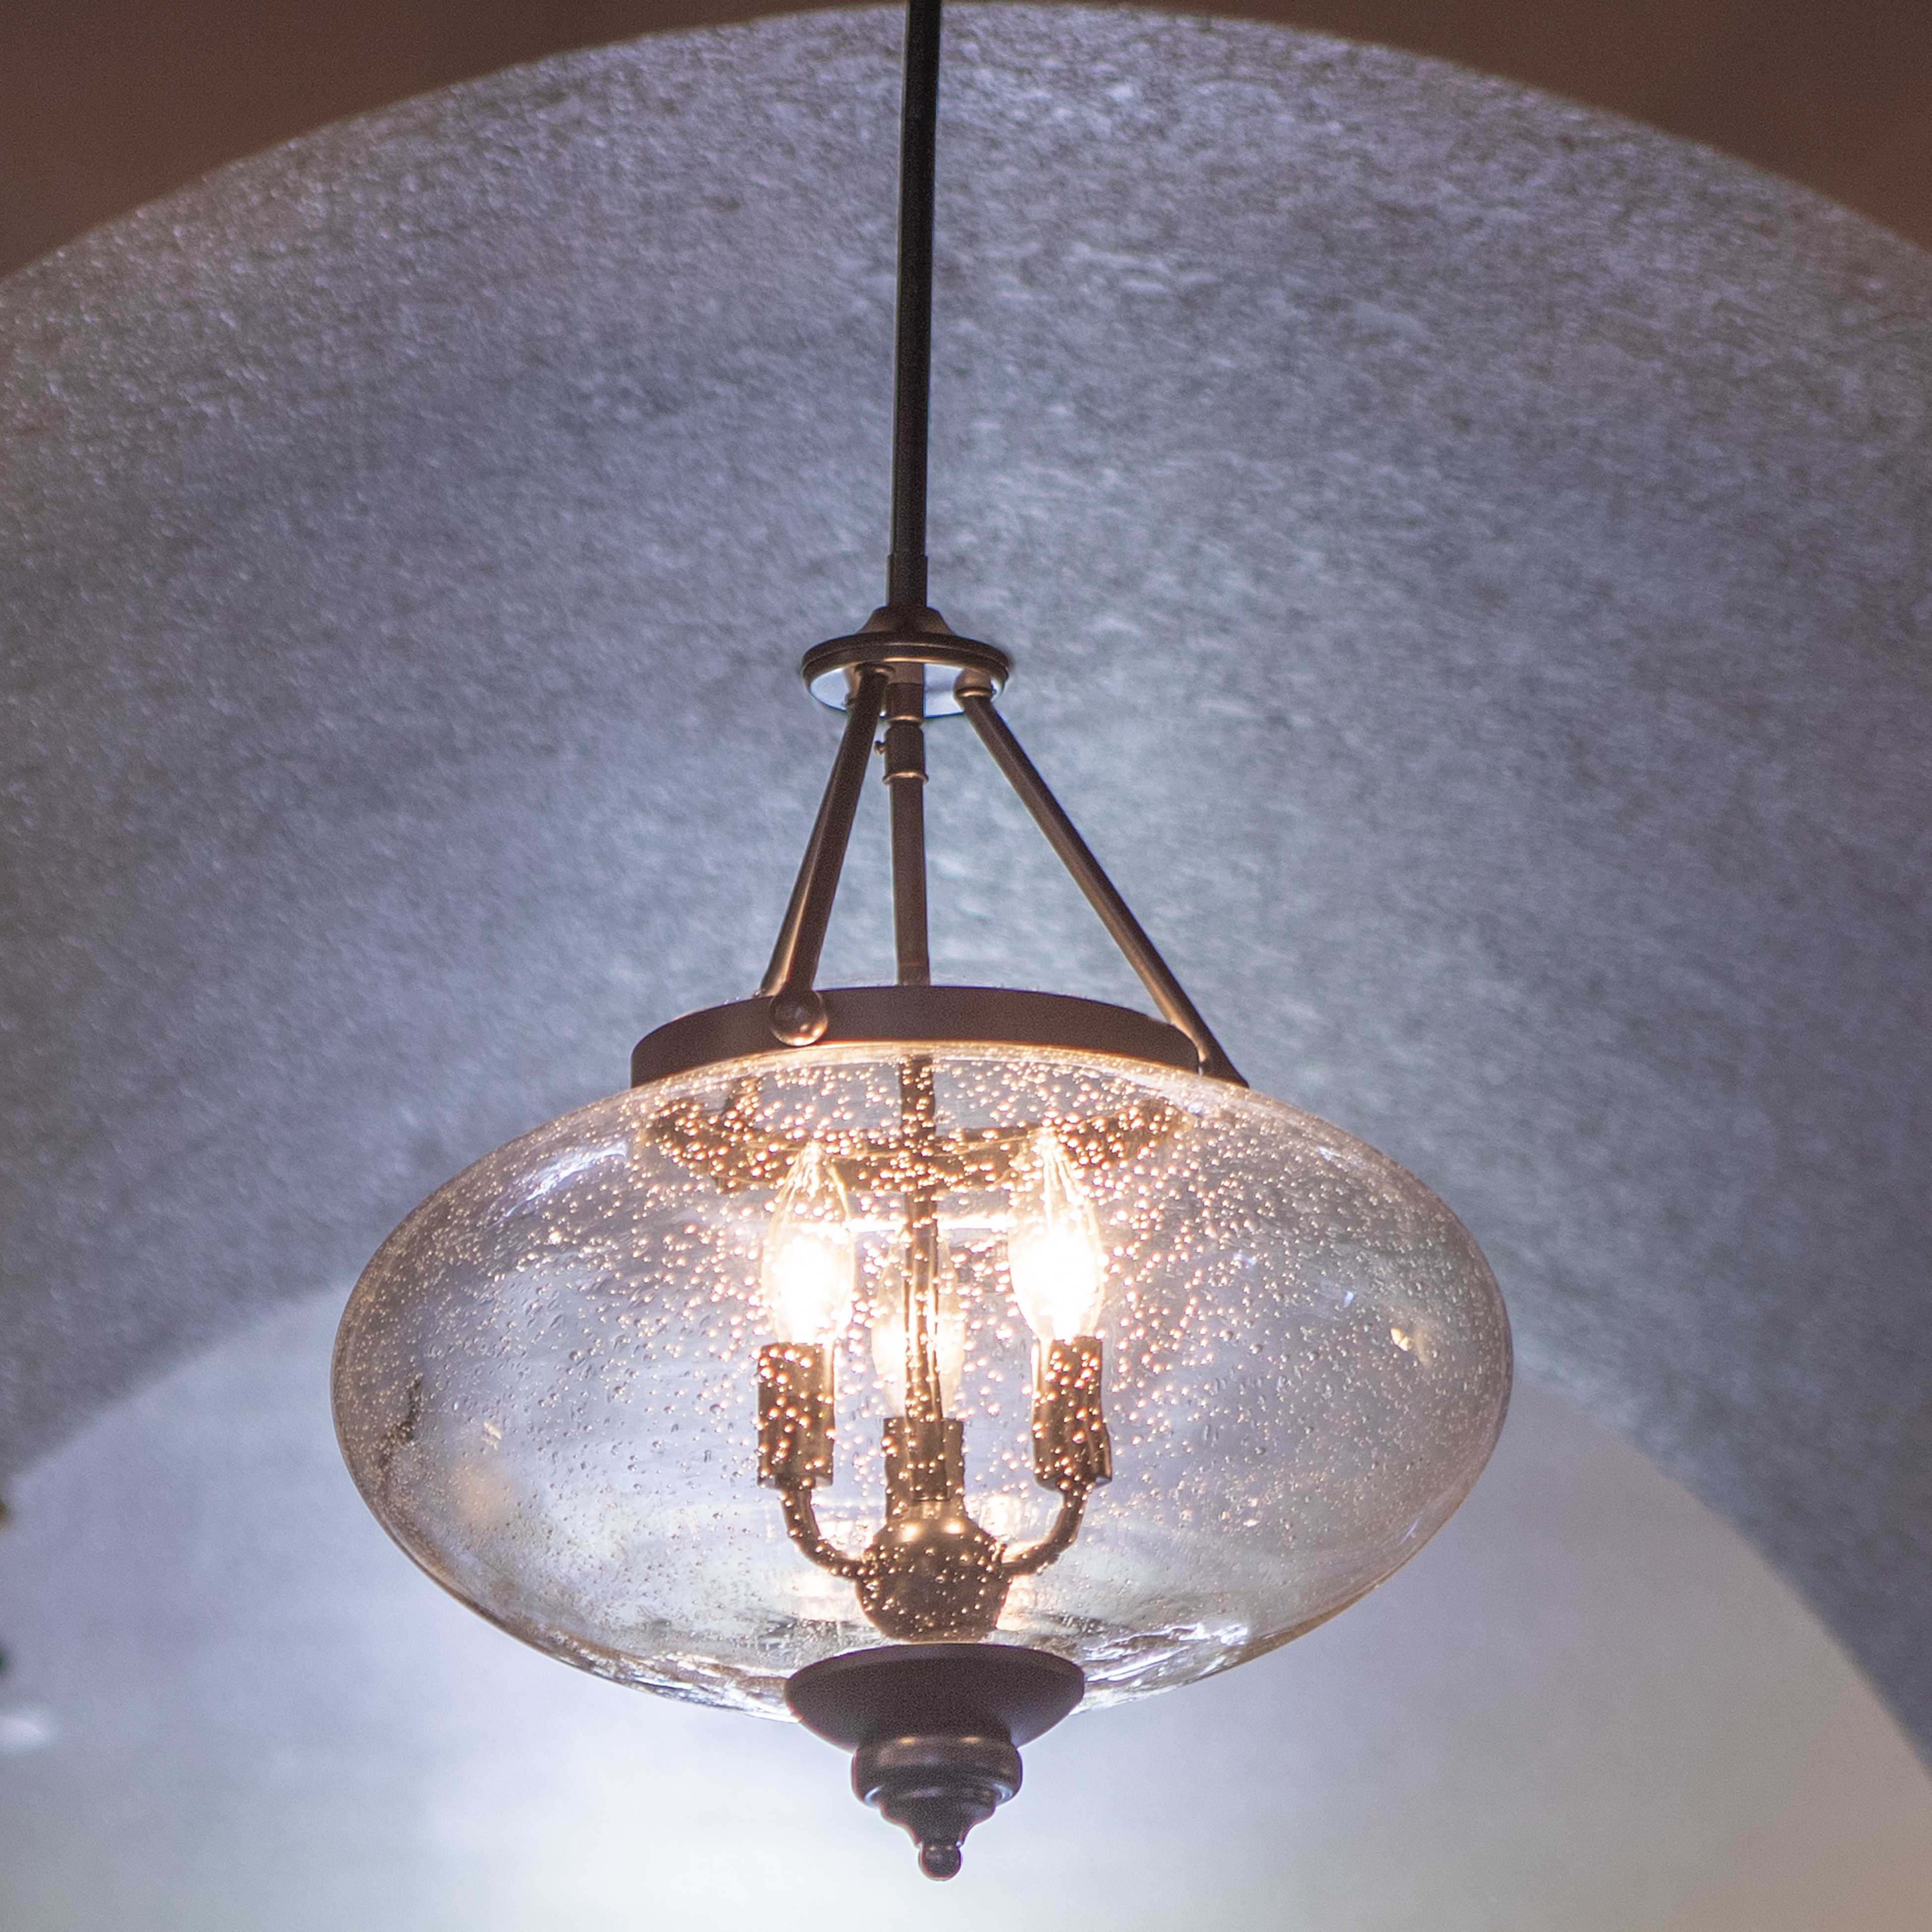 Farmhouse & Rustic Charlton Home Chandeliers (View 15 of 20)